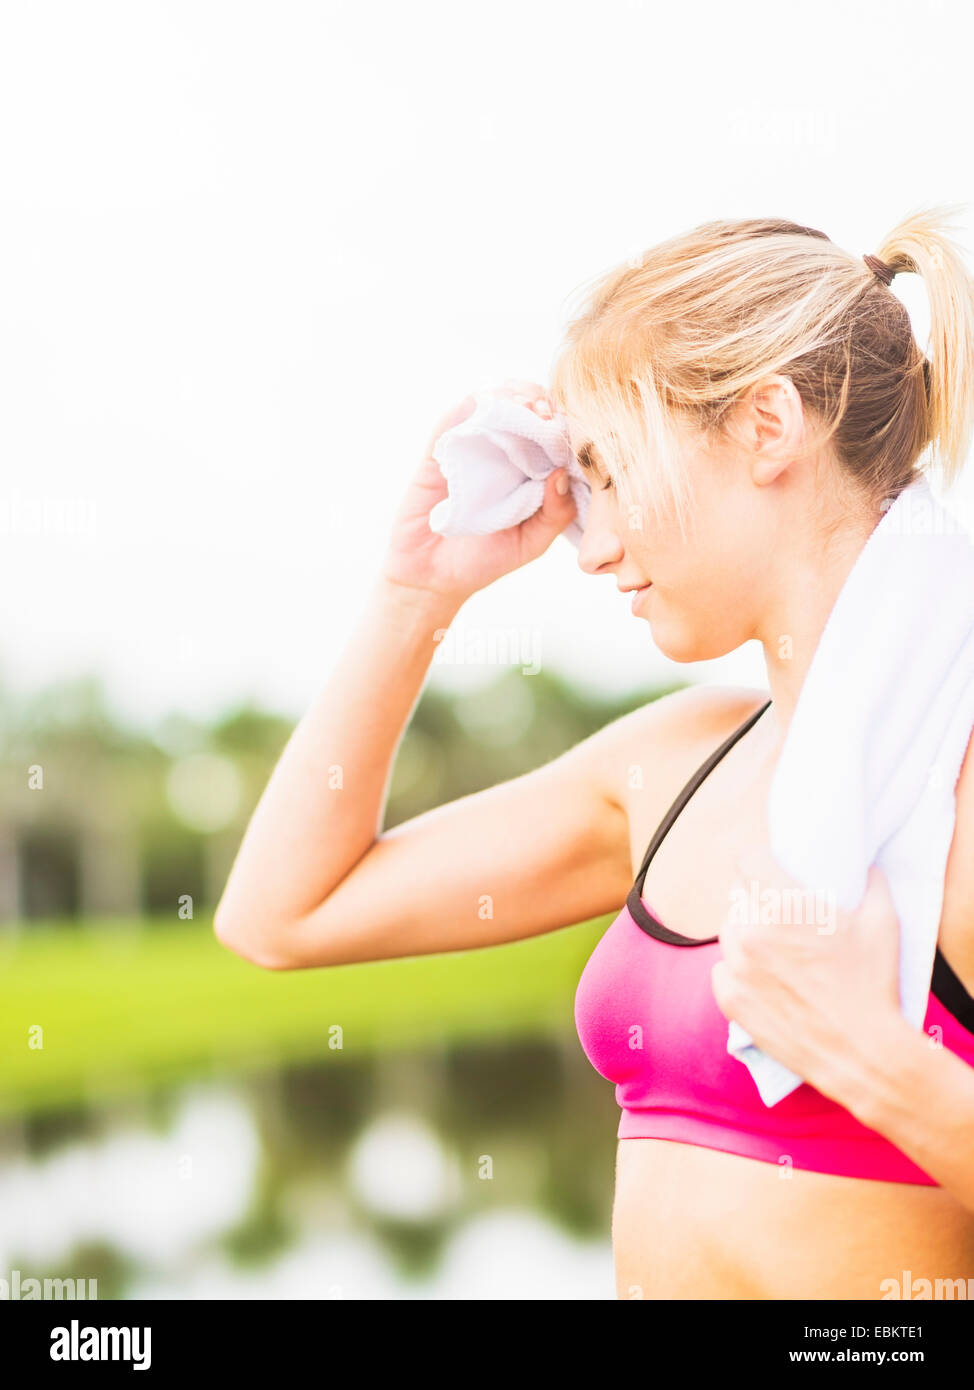 USA, Florida, Jupiter, Woman whipping sweat off forehead - Stock Image